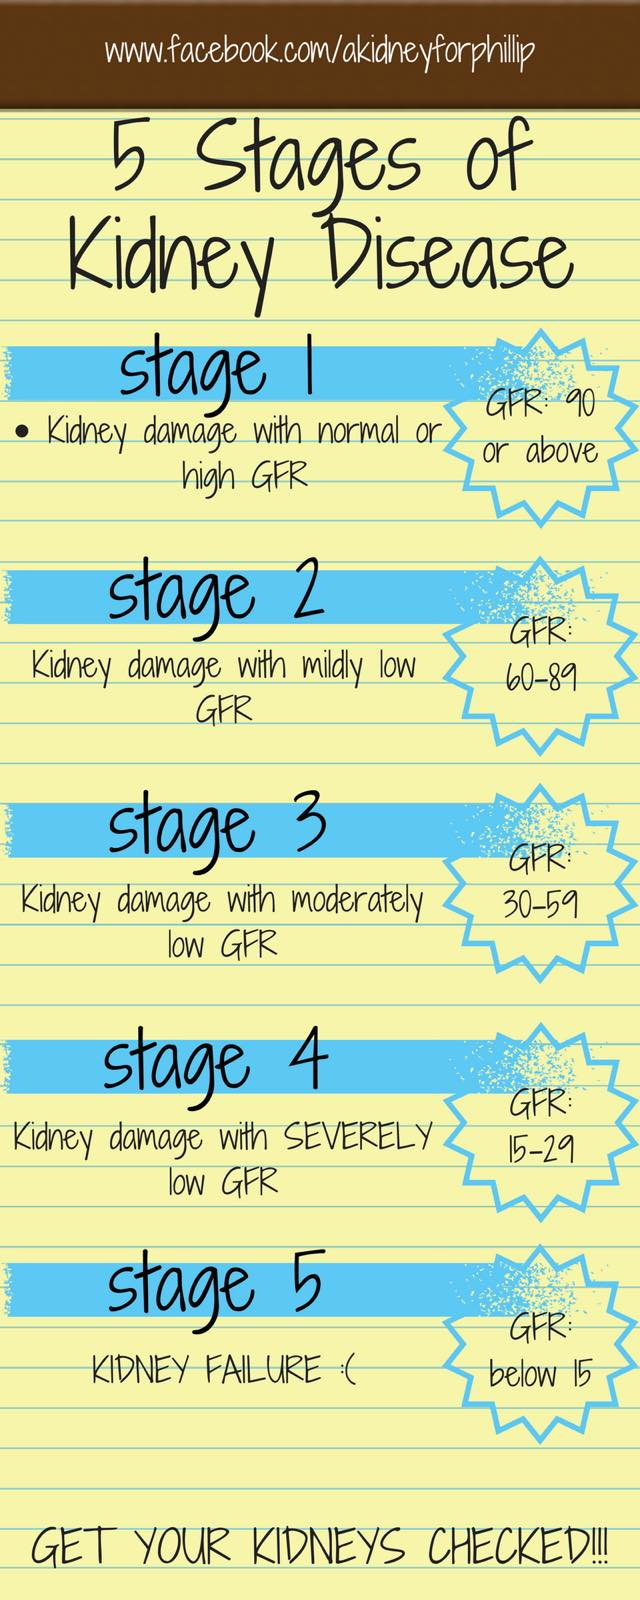 5 stages of kidney disease infographic